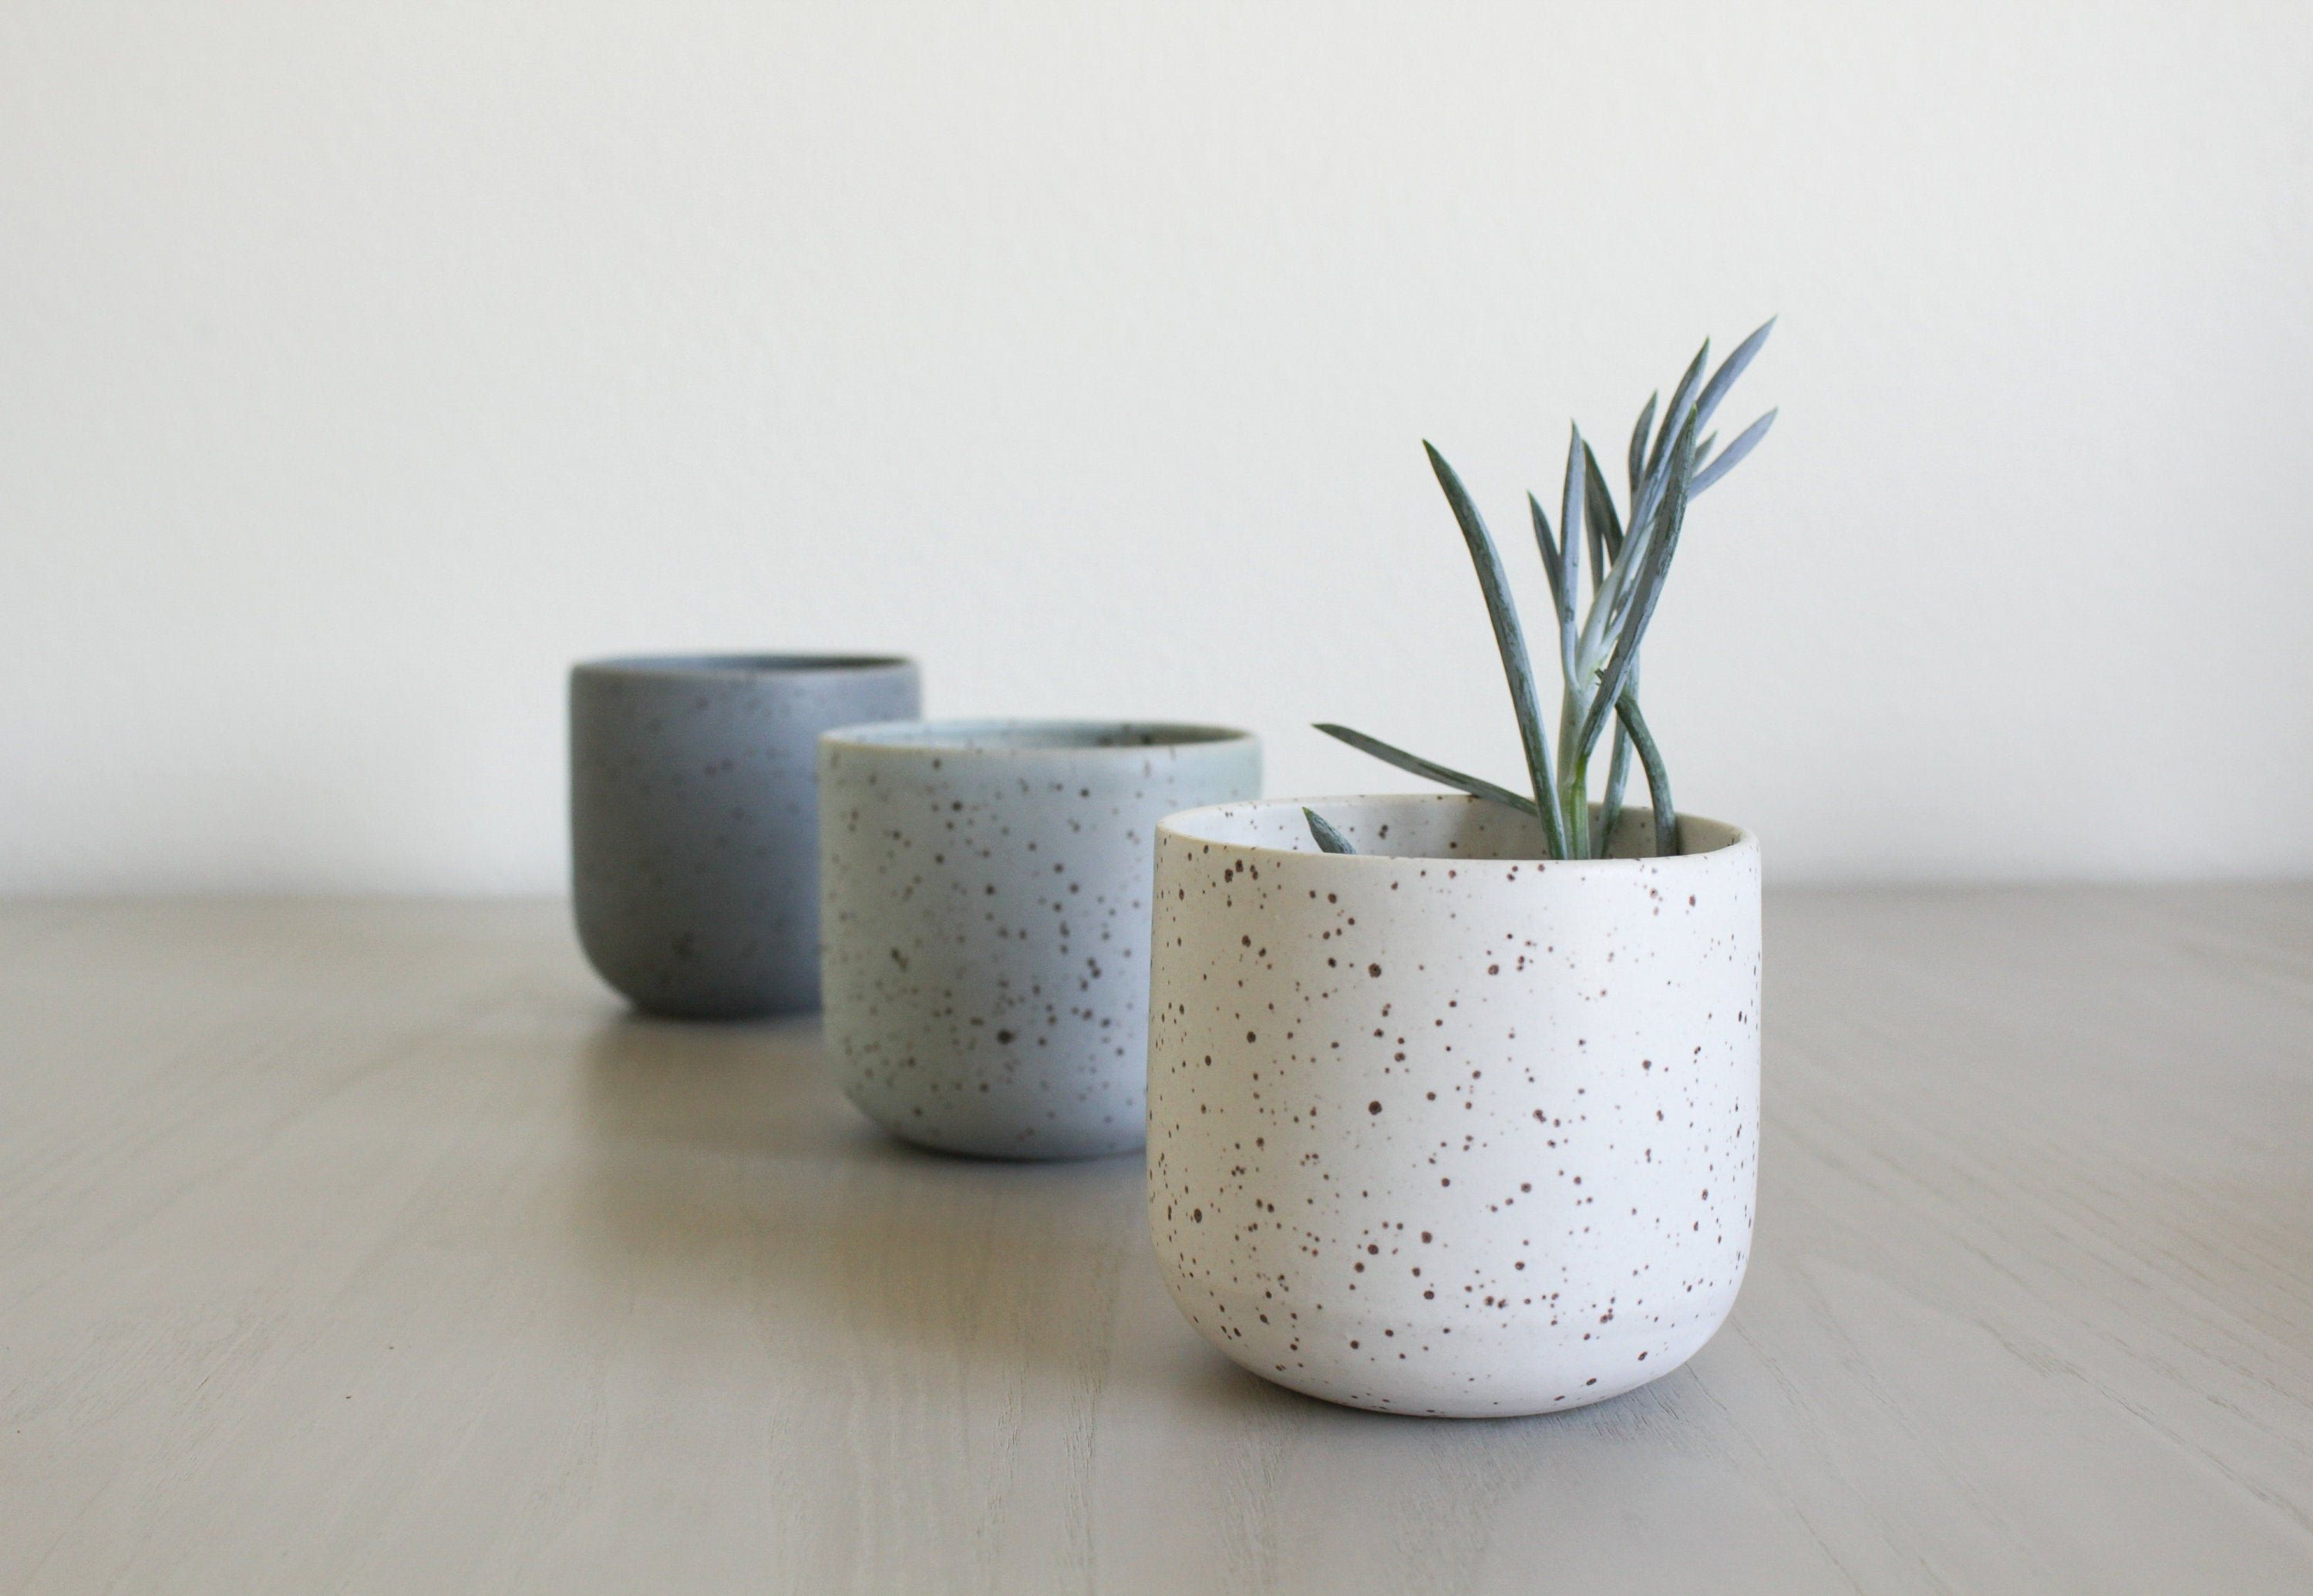 Cord X Clay Speckled Ceramic Planter Pottery Clay Flower Pot White Grey Blue Rustic Modern Handmade Ceramic Planters Handmade Plant Clay Flower Pots